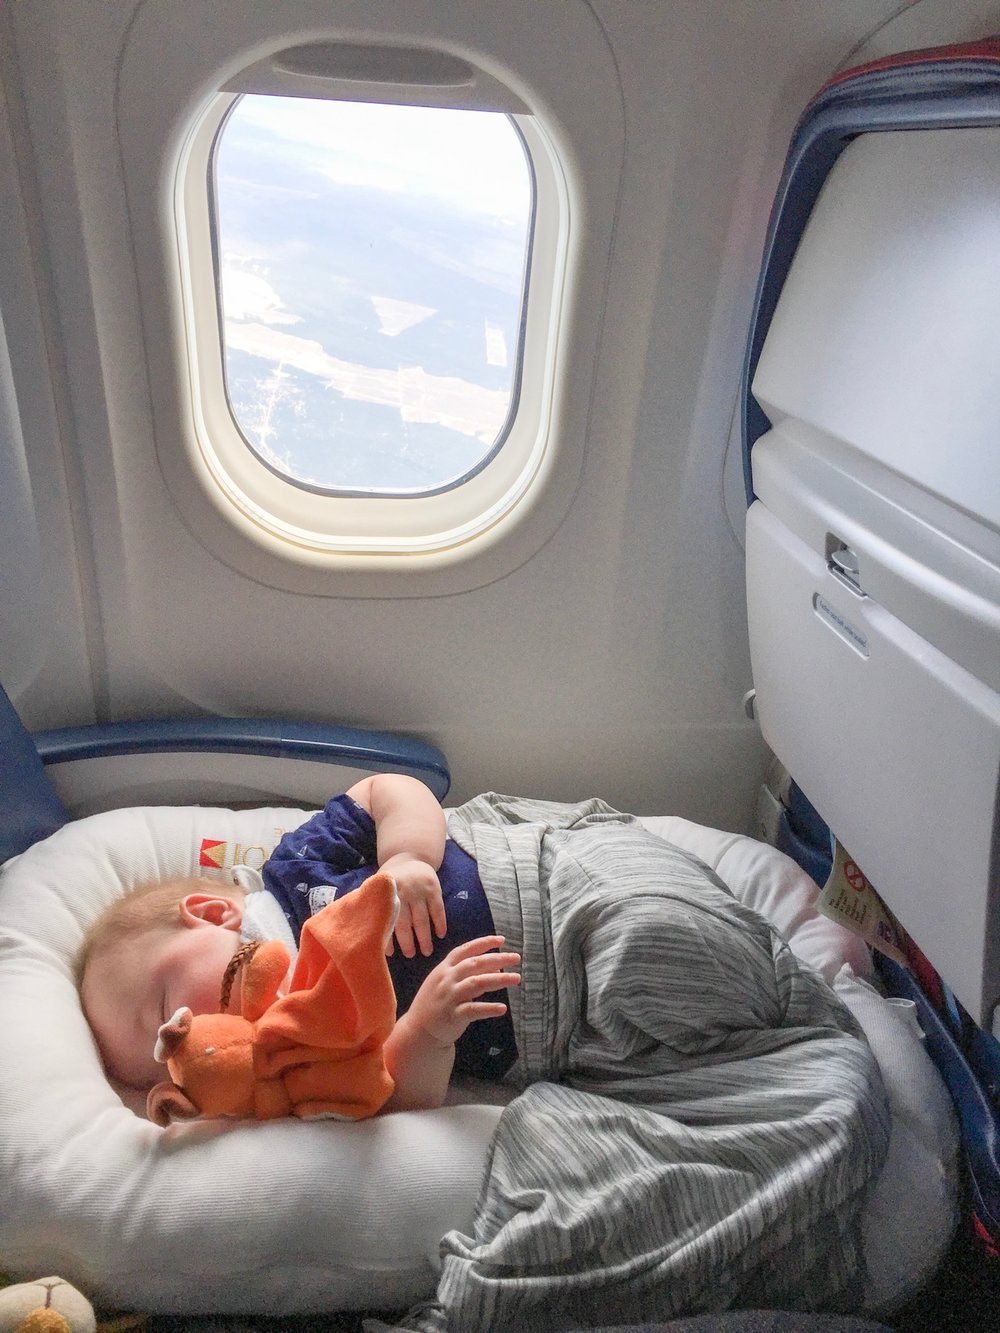 Latham using his DockATot DeluXE here and snoozing away a flight from Amsterdam to Prague.